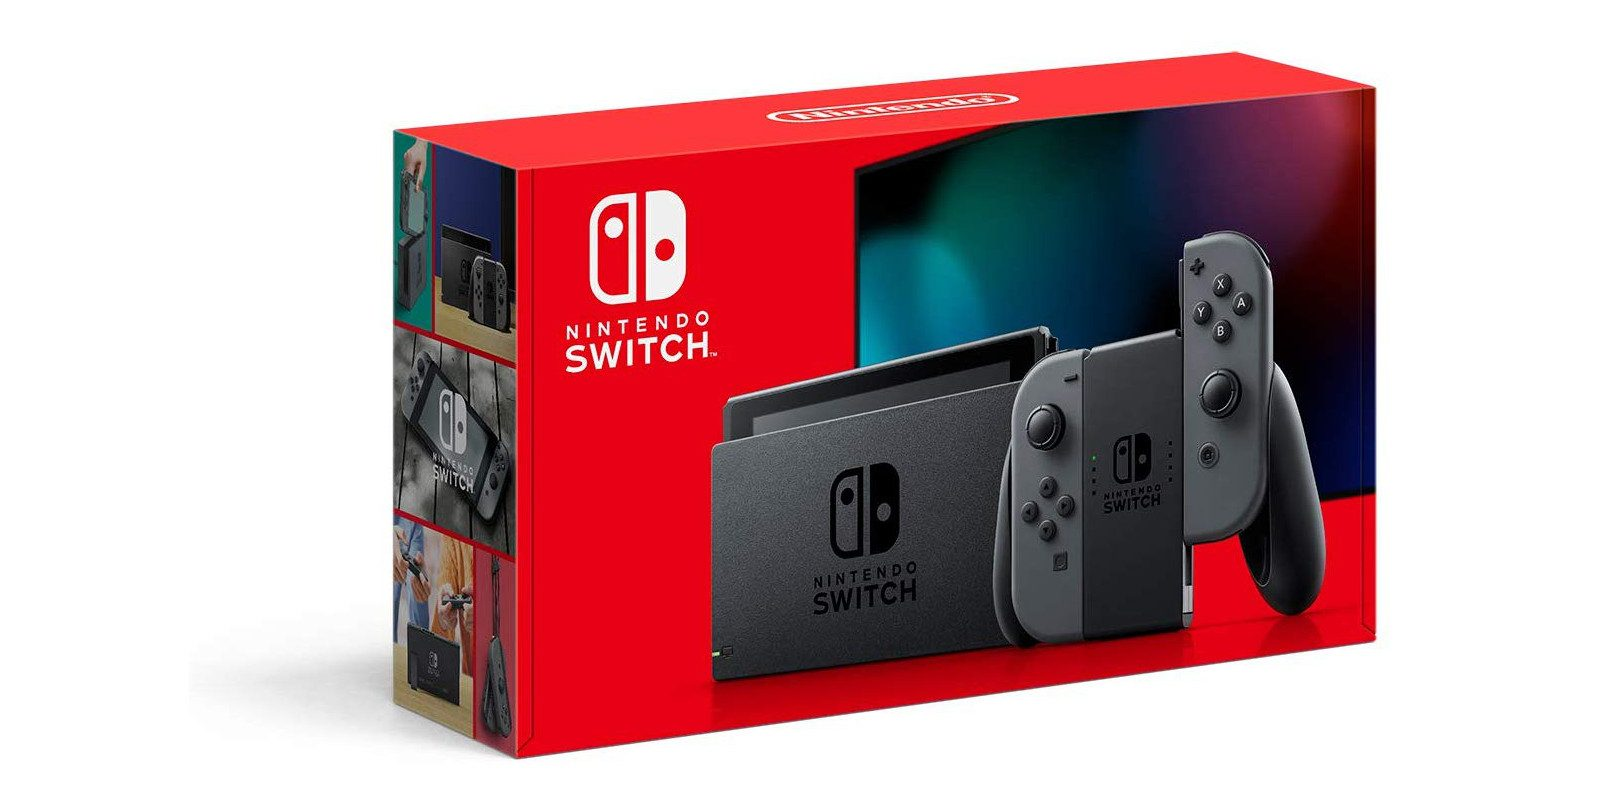 The 2019 Nintendo Switch at one of its best prices yet: $263 (Reg. $300)